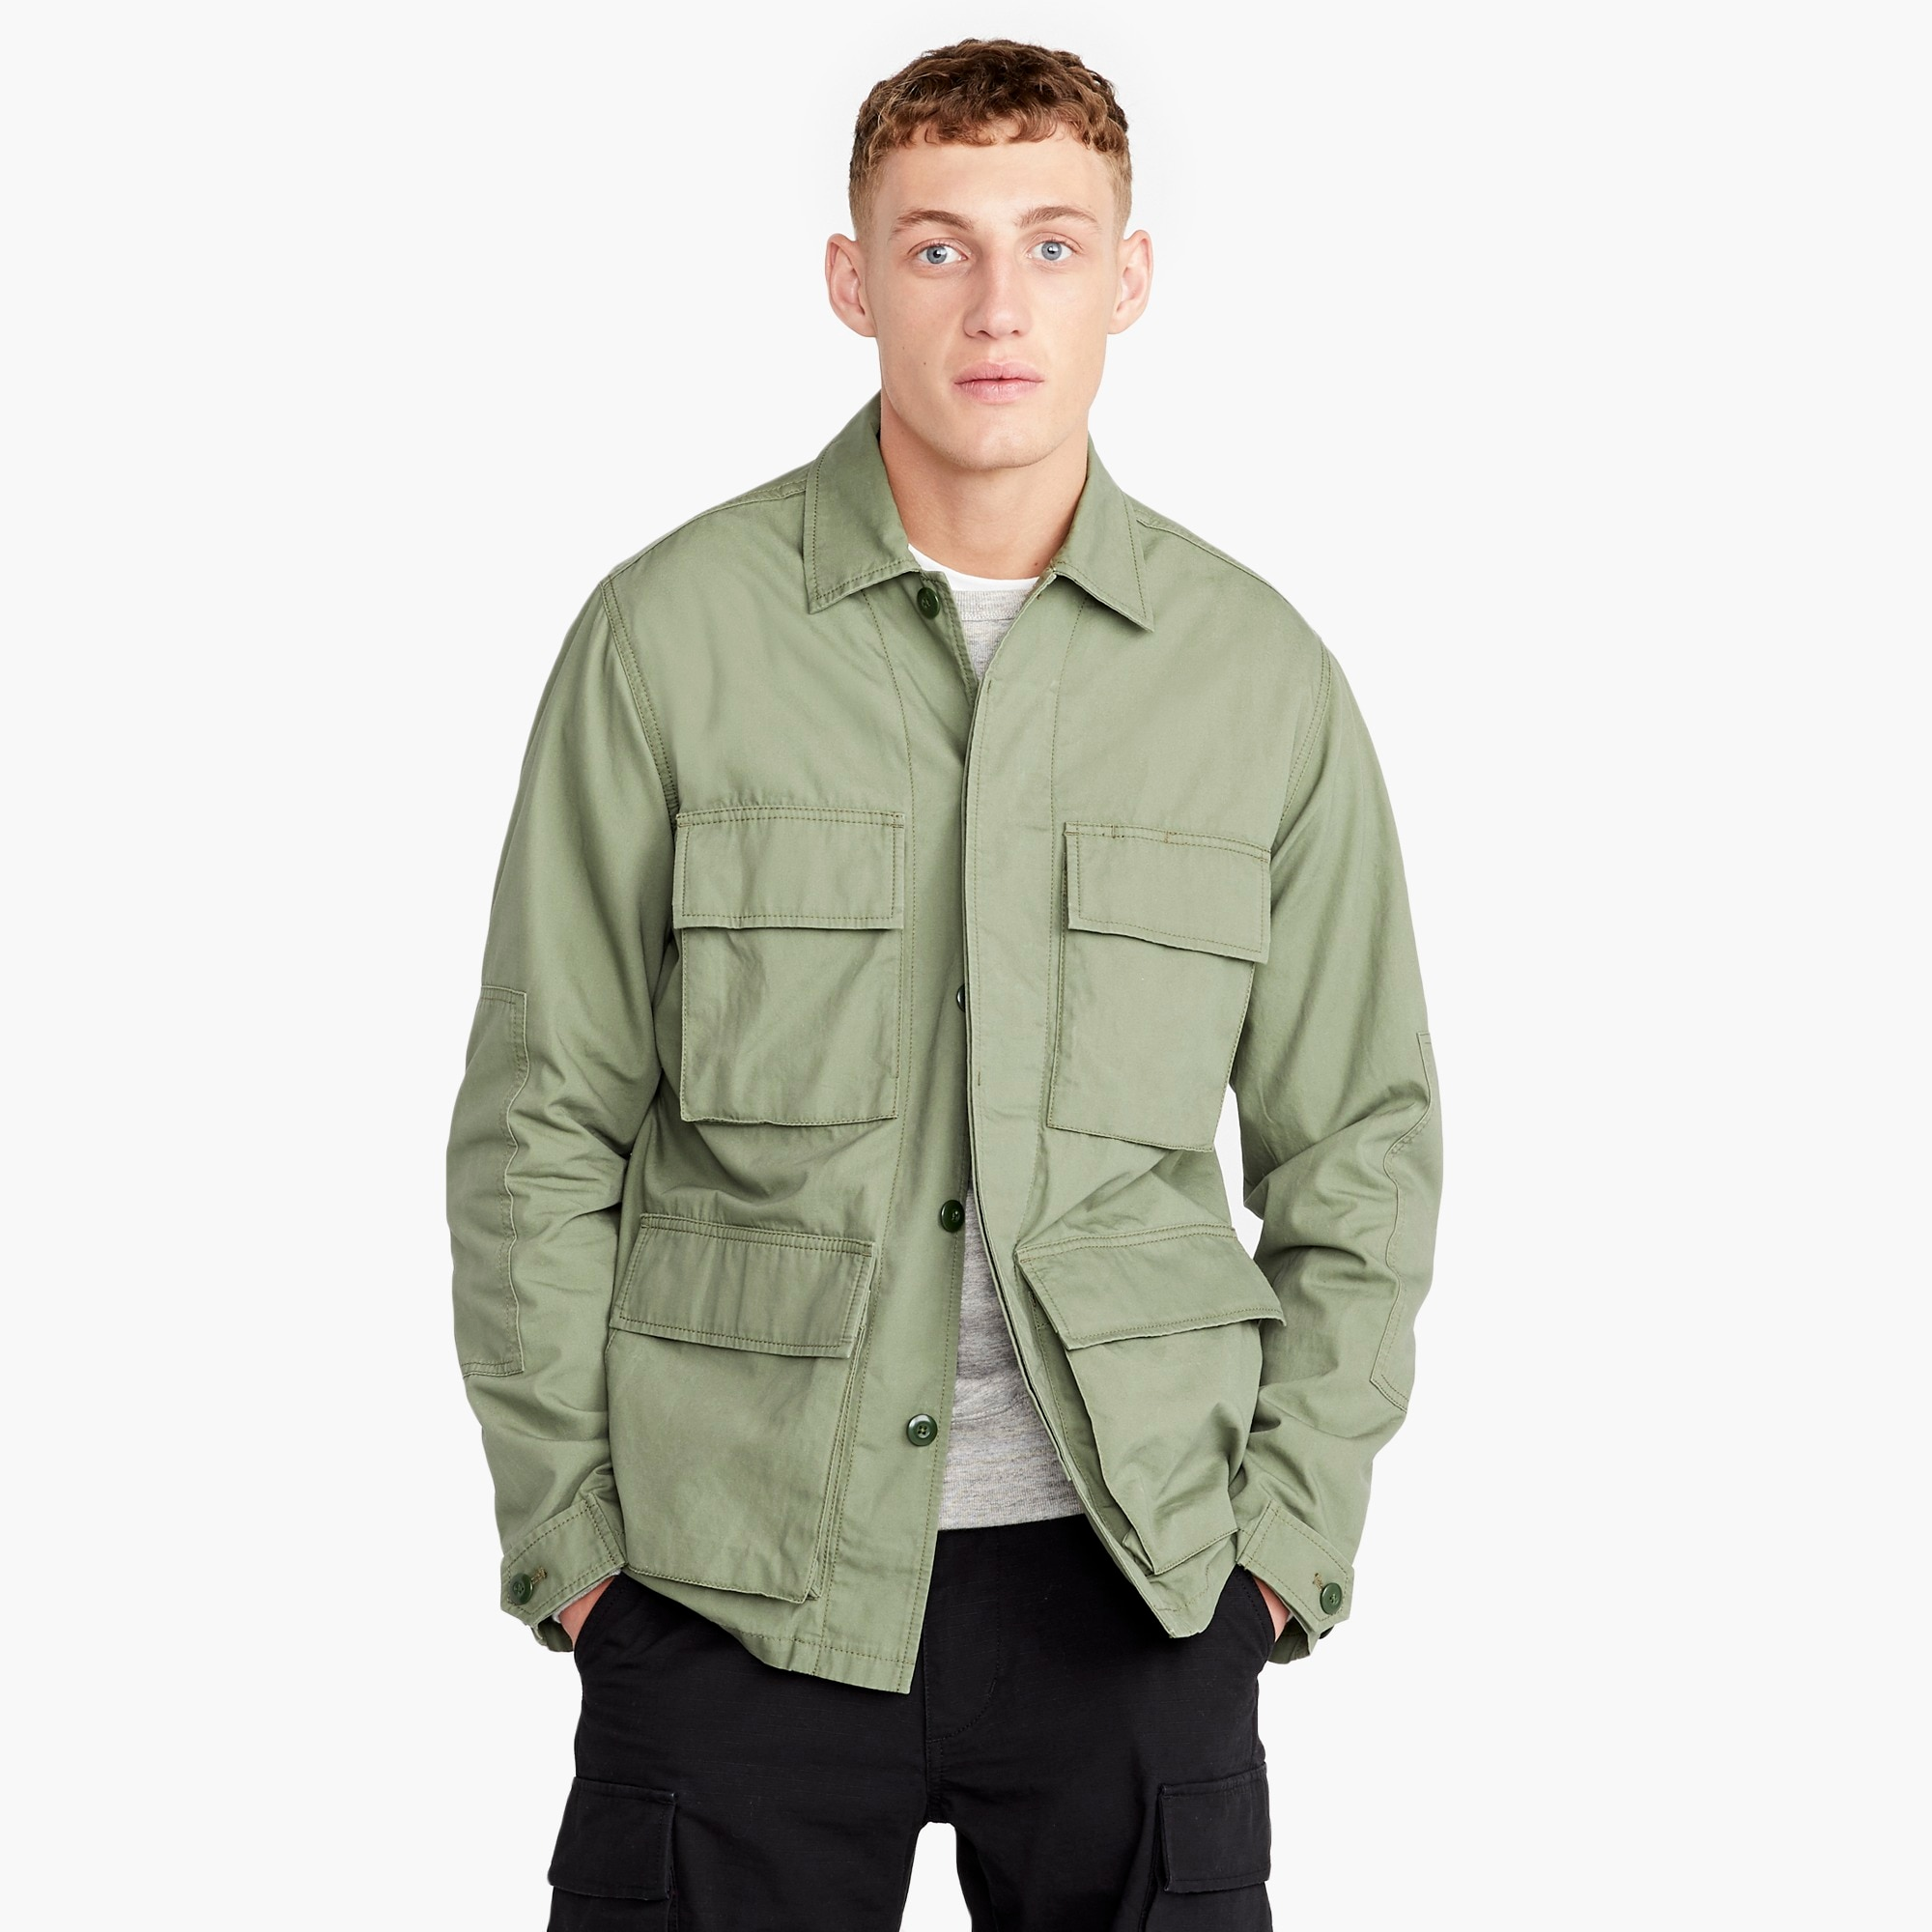 Image 1 for Field jacket